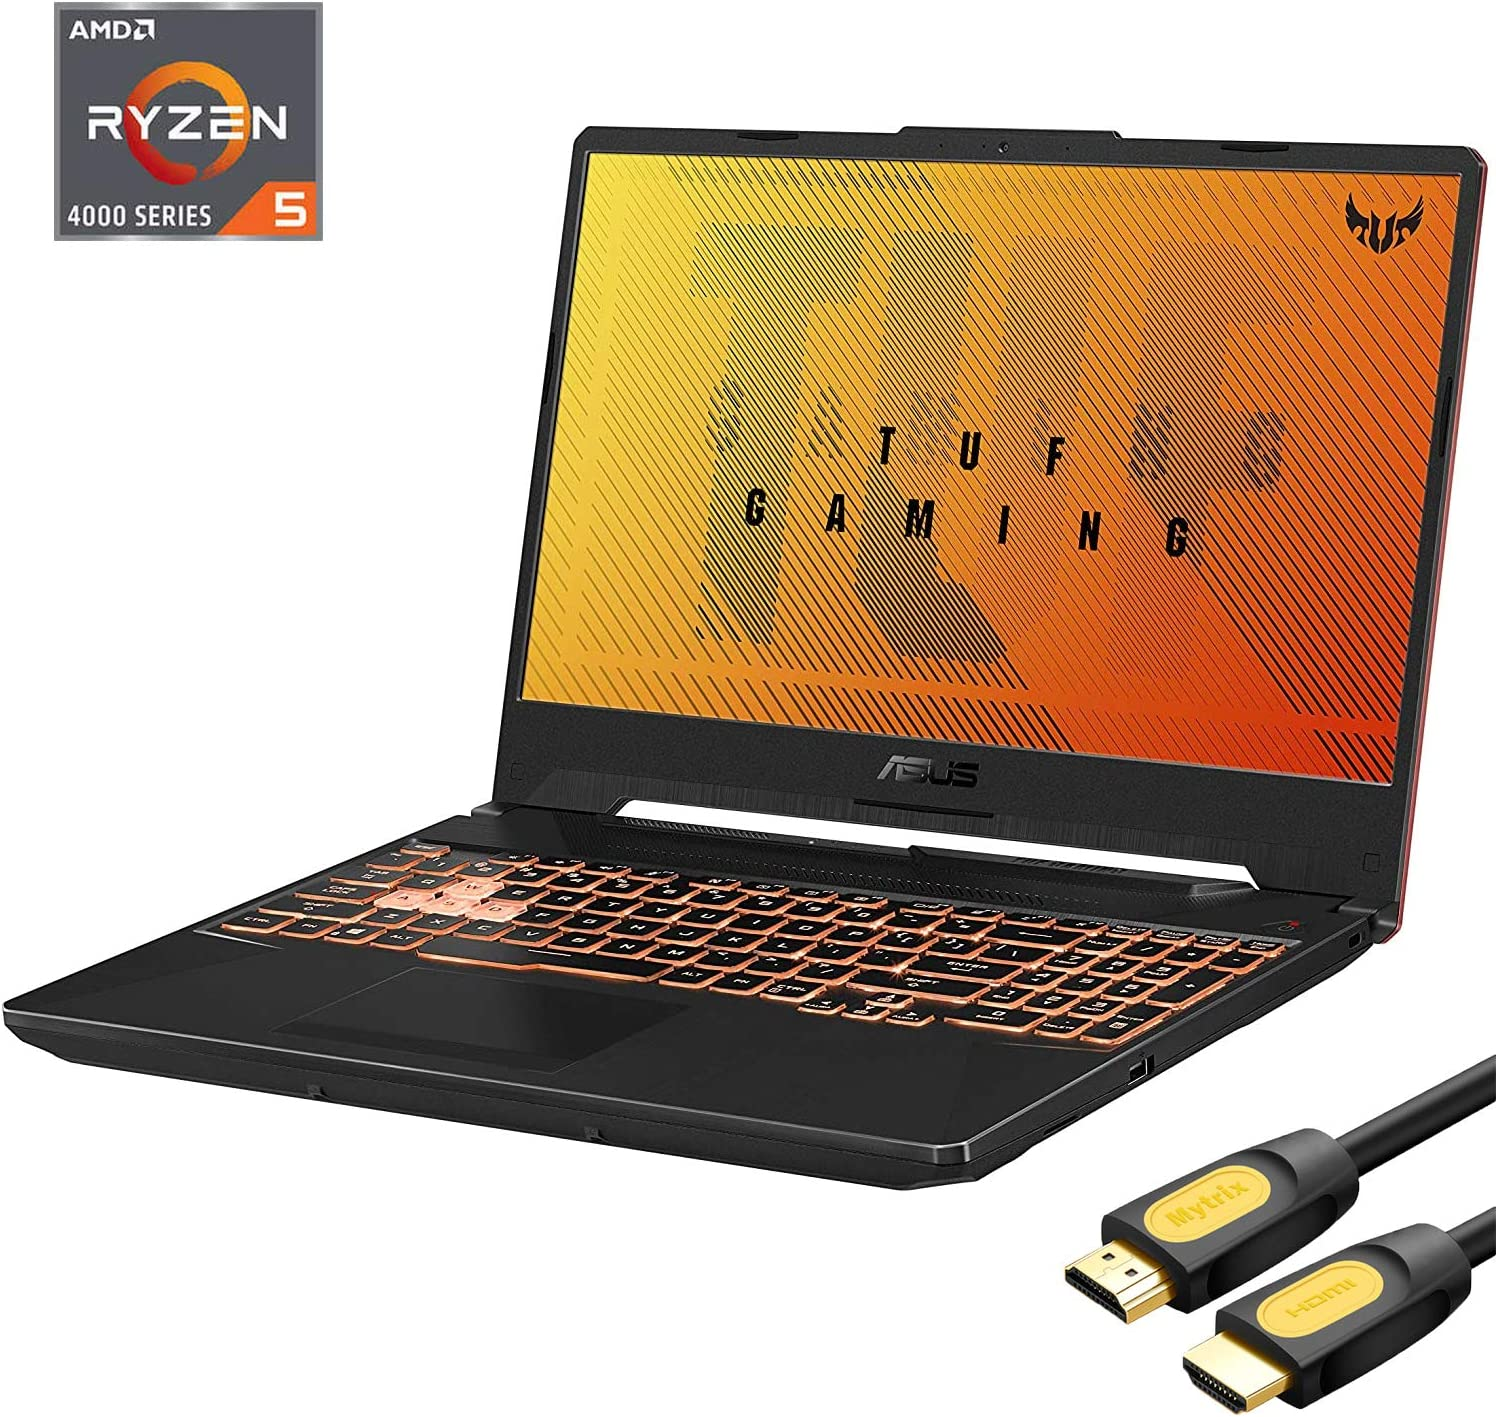 "ASUS TUF A15 Gaming 144Hz Laptop, 15.6"" FHD IPS-Type, AMD Ryzen 5 4600H 6-Core up to 4.0 GHz, GTX 1650, 16GB RAM, 512GB SSD+1TB HDD, RGB KB, RJ-45, Mytrix HDMI Cable, Win 10"